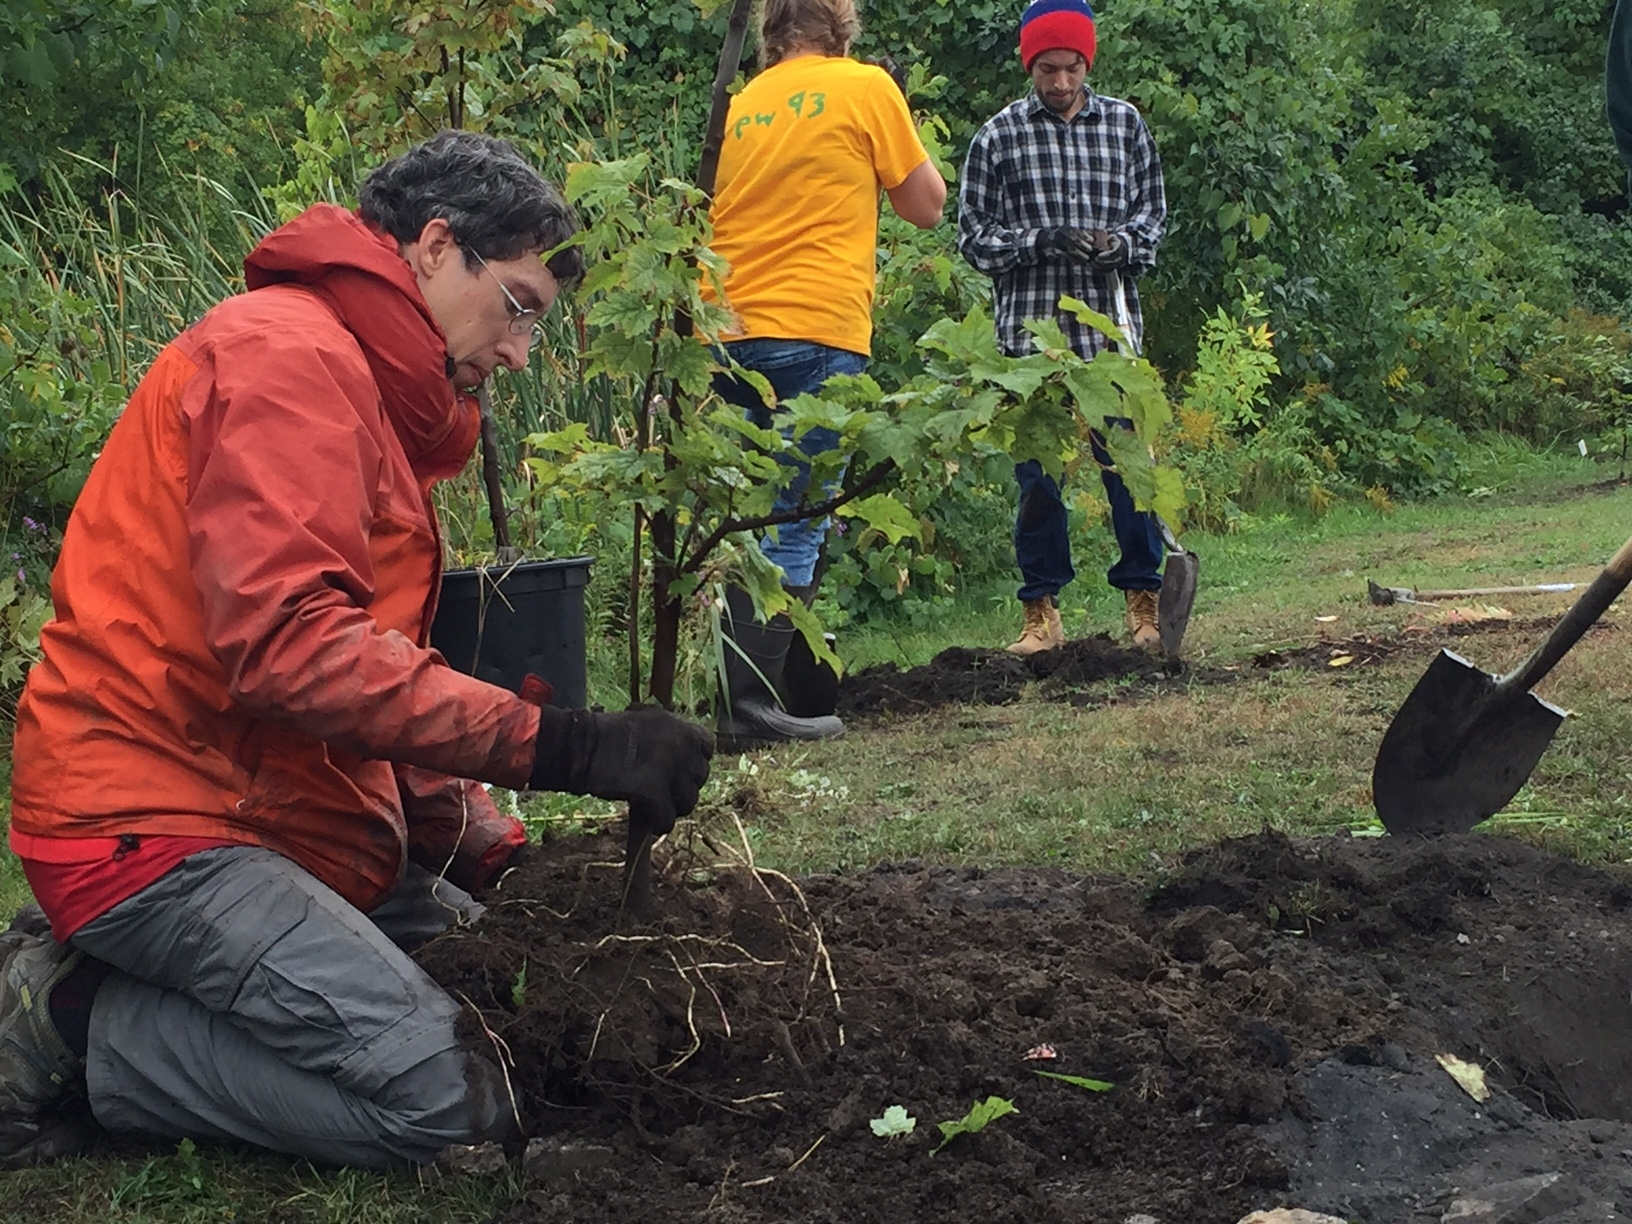 Volunteers with the Buffalo Niagara Riverkeeper organization plant trees and shrubs along Gill Creek on Tuesday, Oct. 4, 2016. The organization held a news conference to announce a restoration project that includes planting 120 new trees and understory vegetation along the creek in Niagara County. (Provided photo)